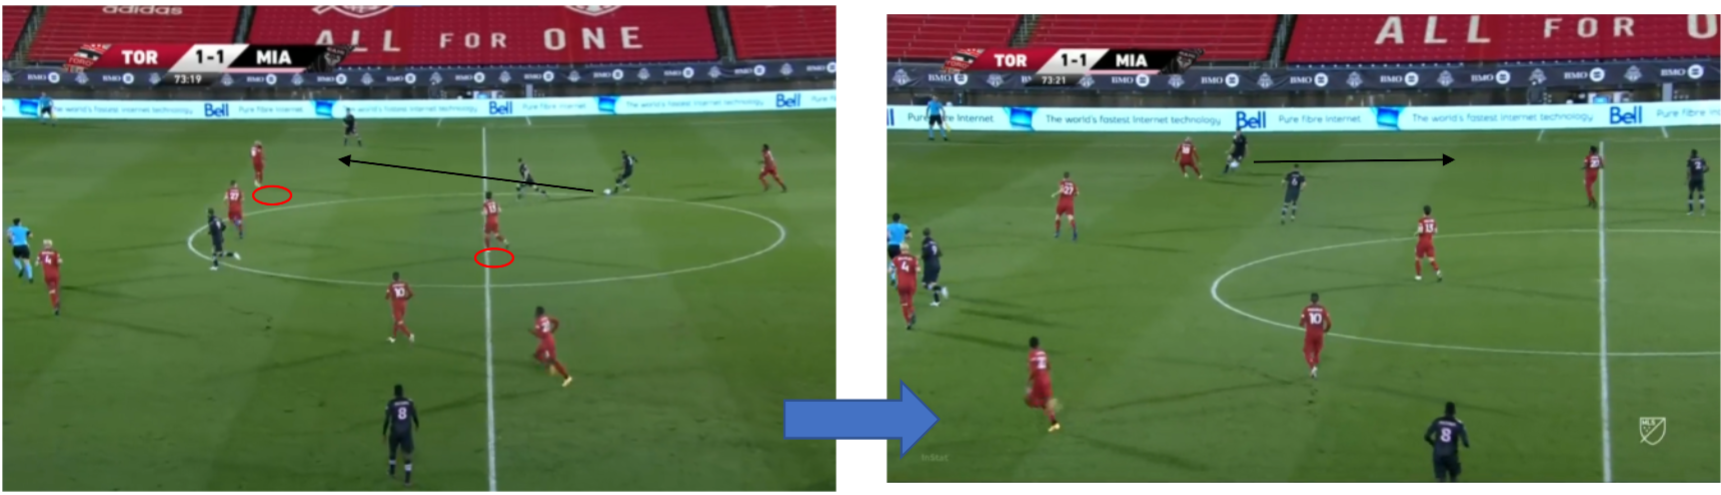 MLS 2020: Toronto FC vs Inter Miami – tactical analysis